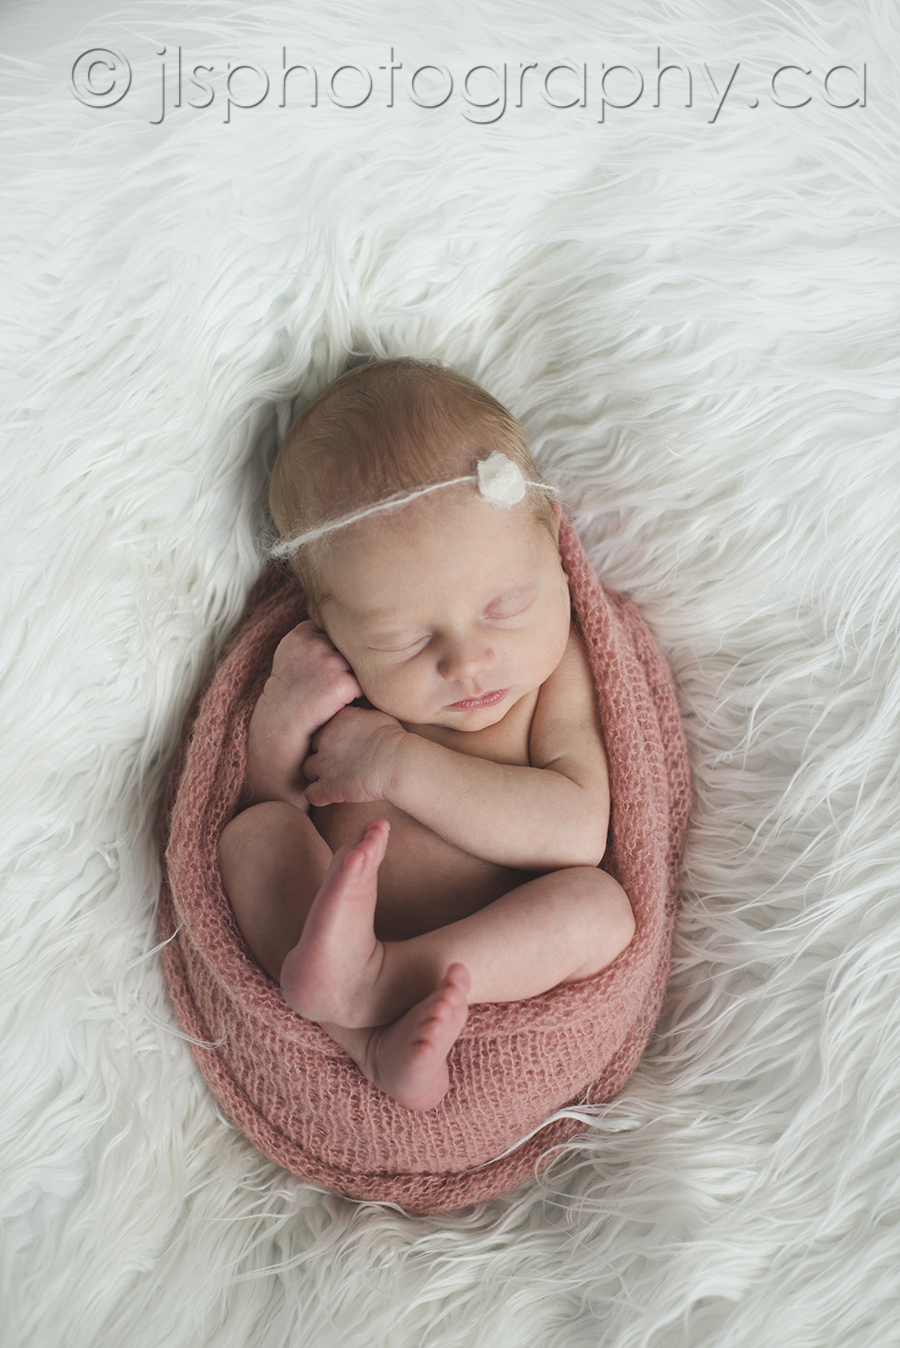 Newborn all curled up, like in utero, Newborn as they look inside, Curled up in mom, Newborn baby girl, 5 lb baby girl